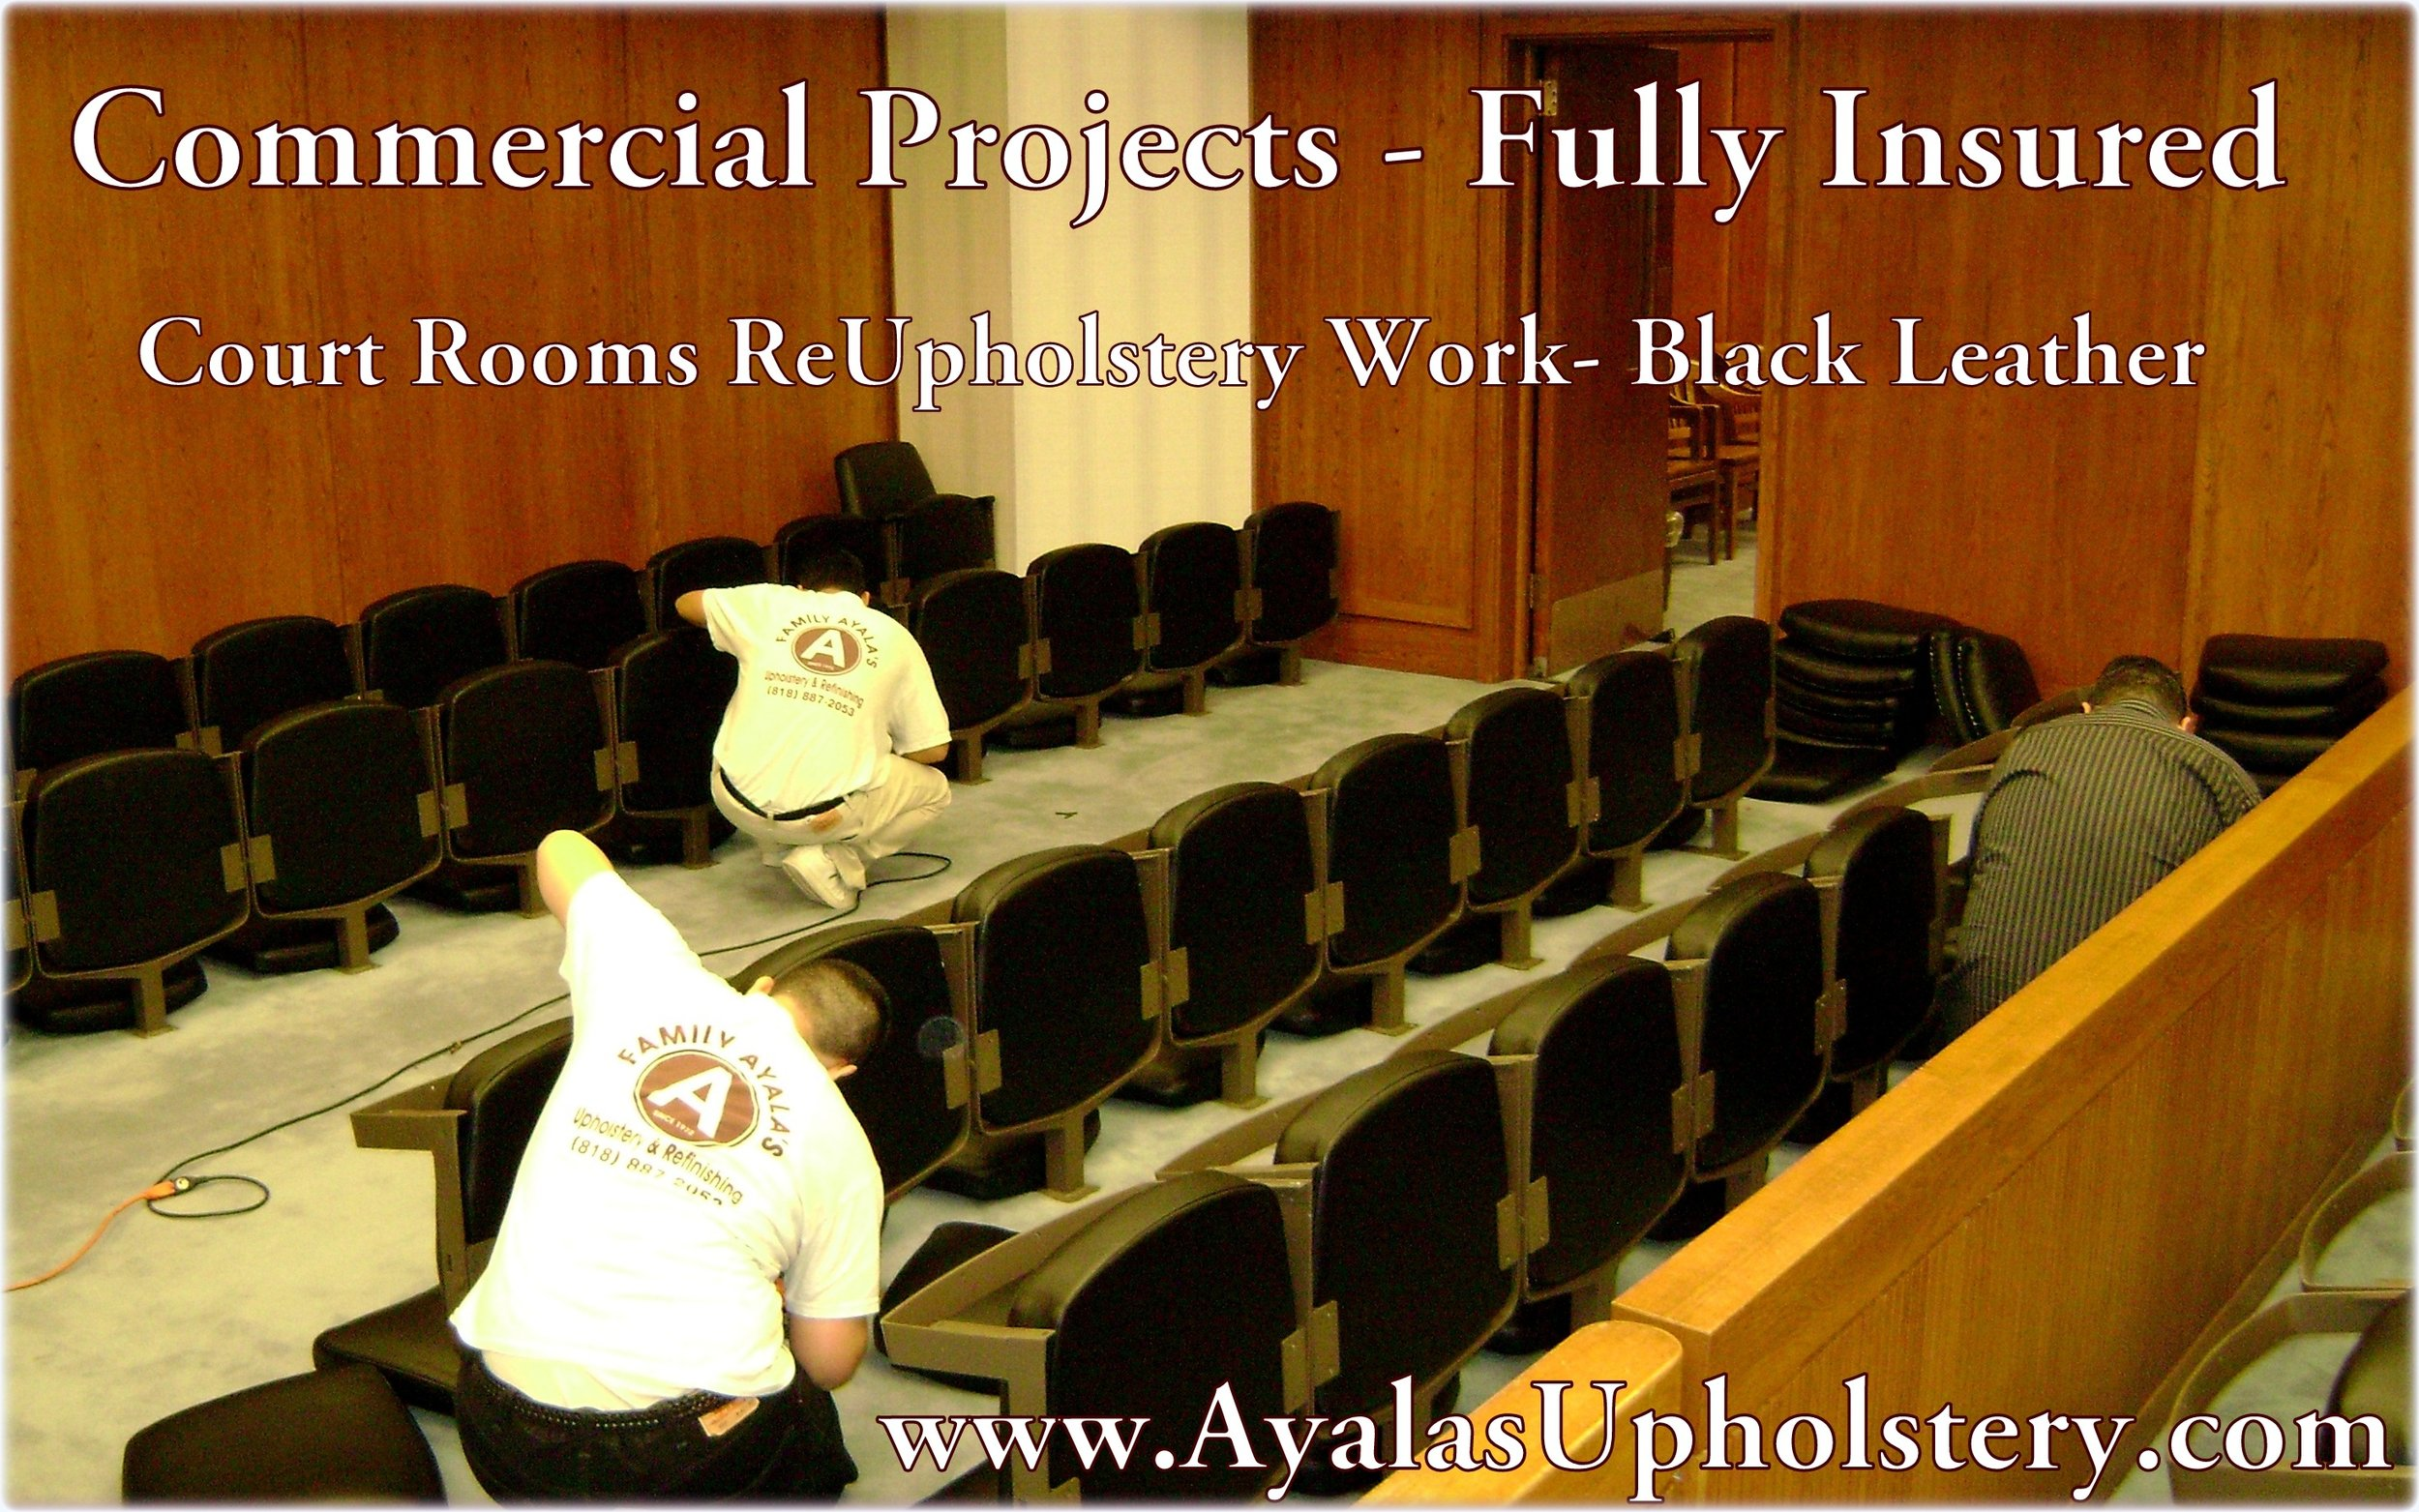 commercial upholstery work by ayala.jpg